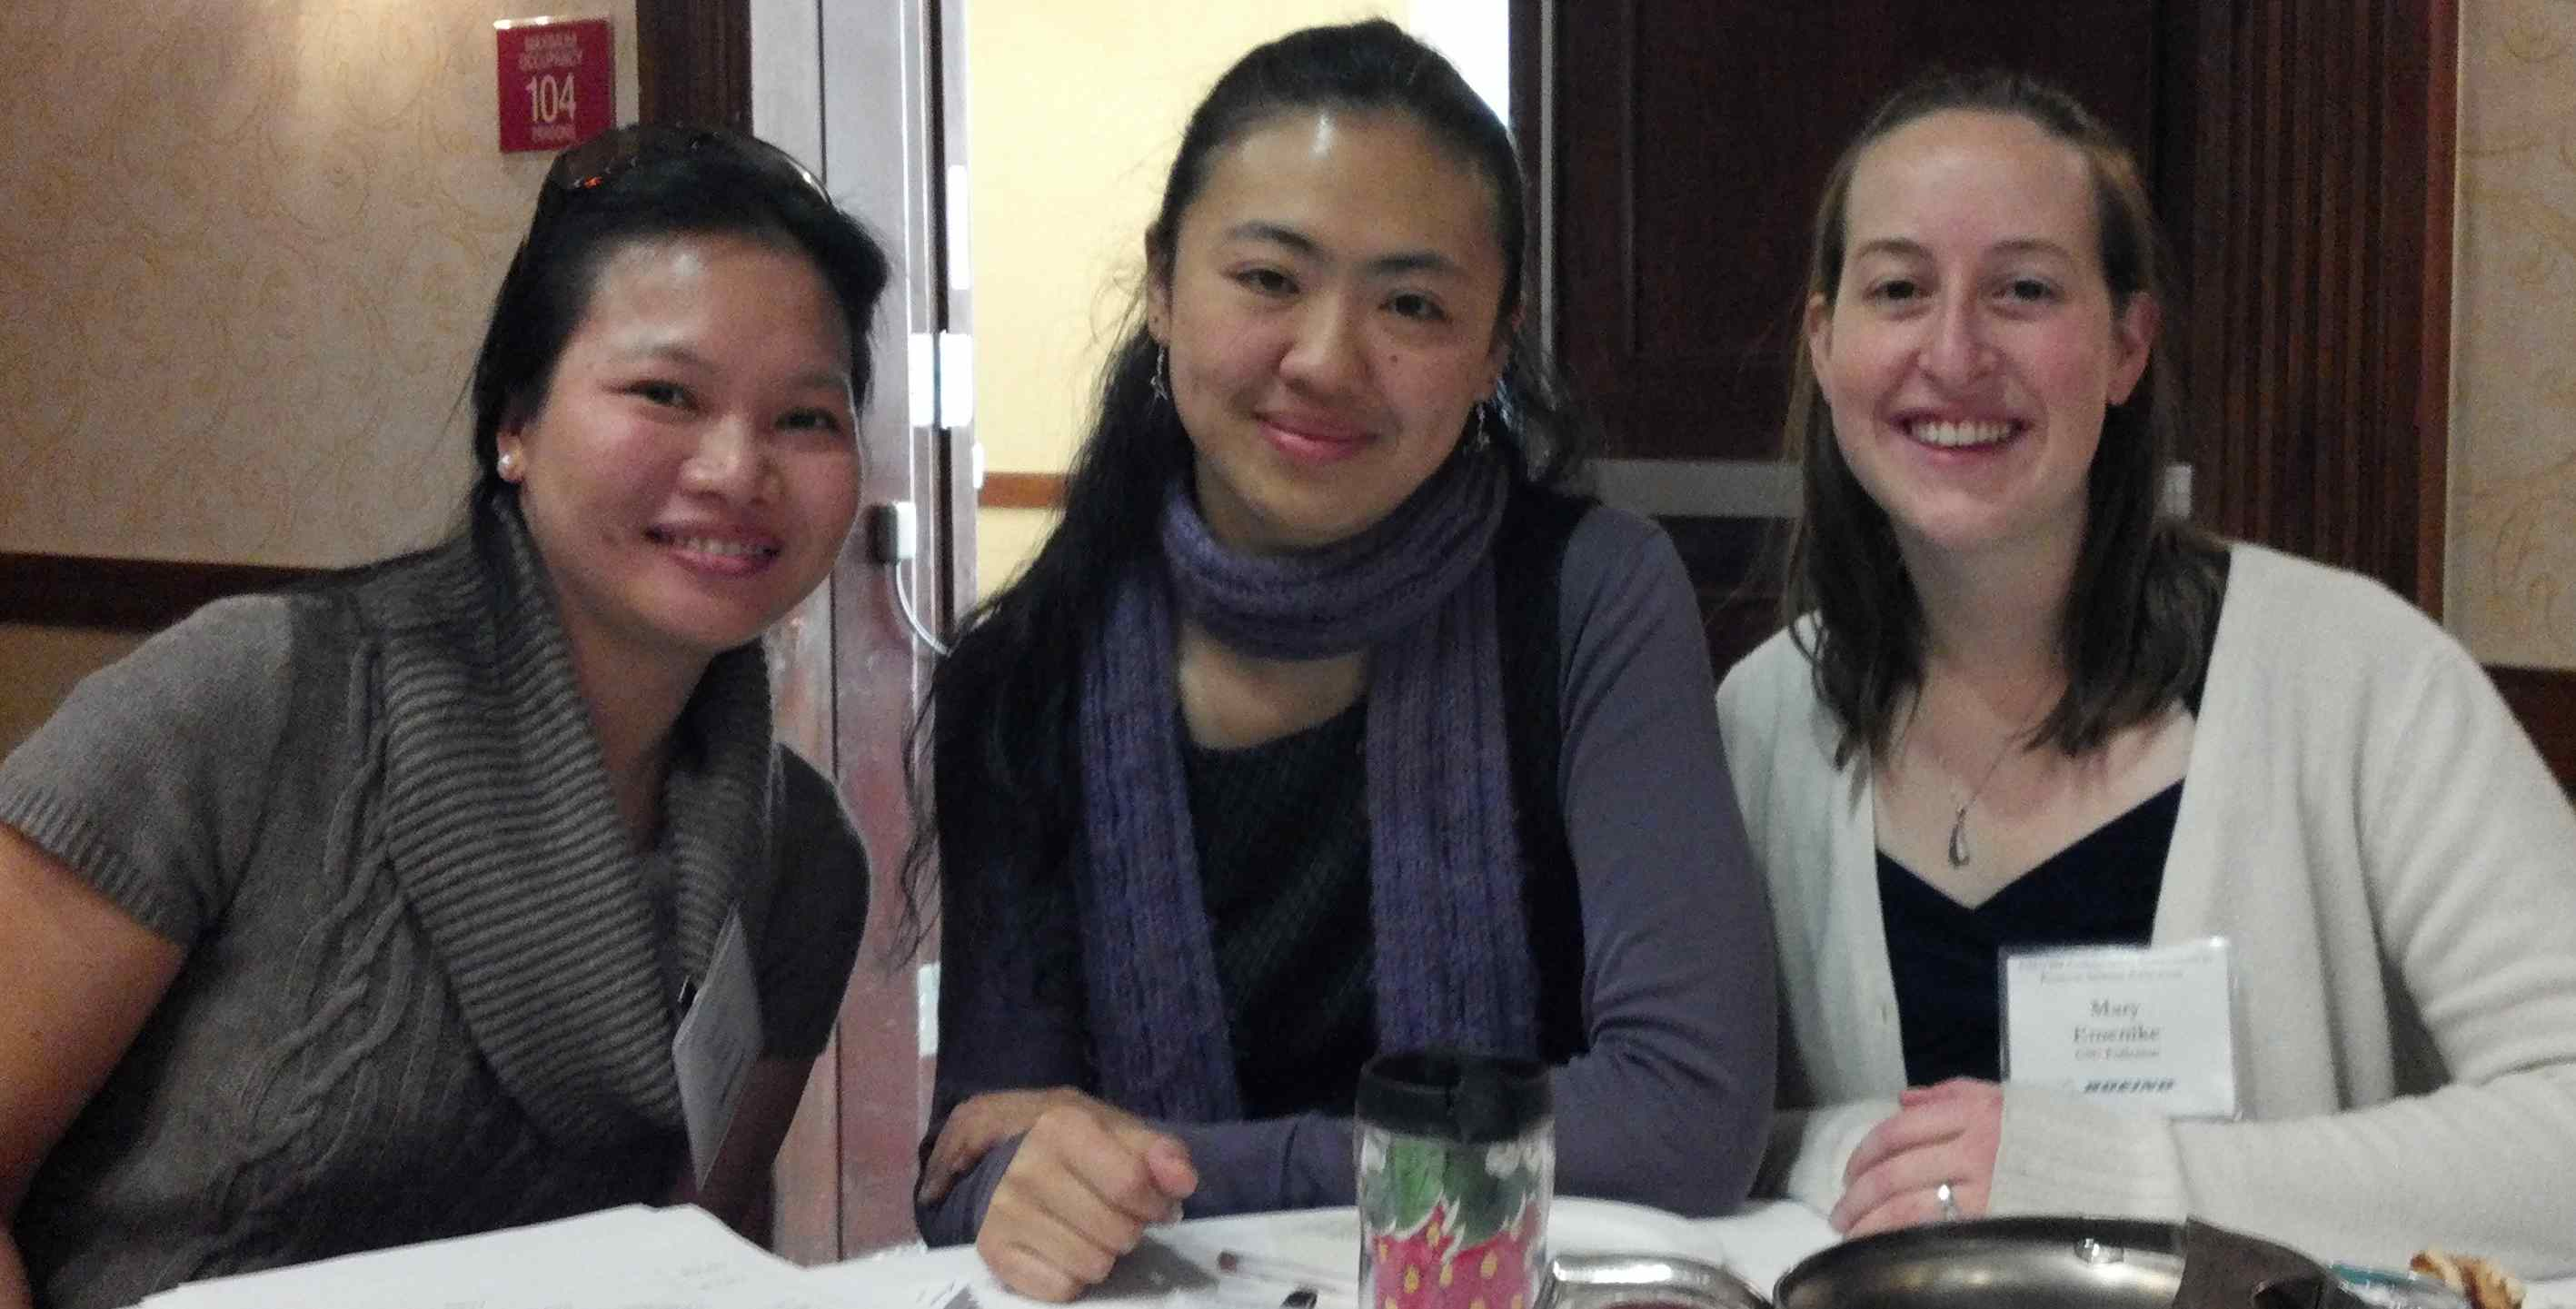 left to right: Professor Natalie Tran, Sissi, and Mary